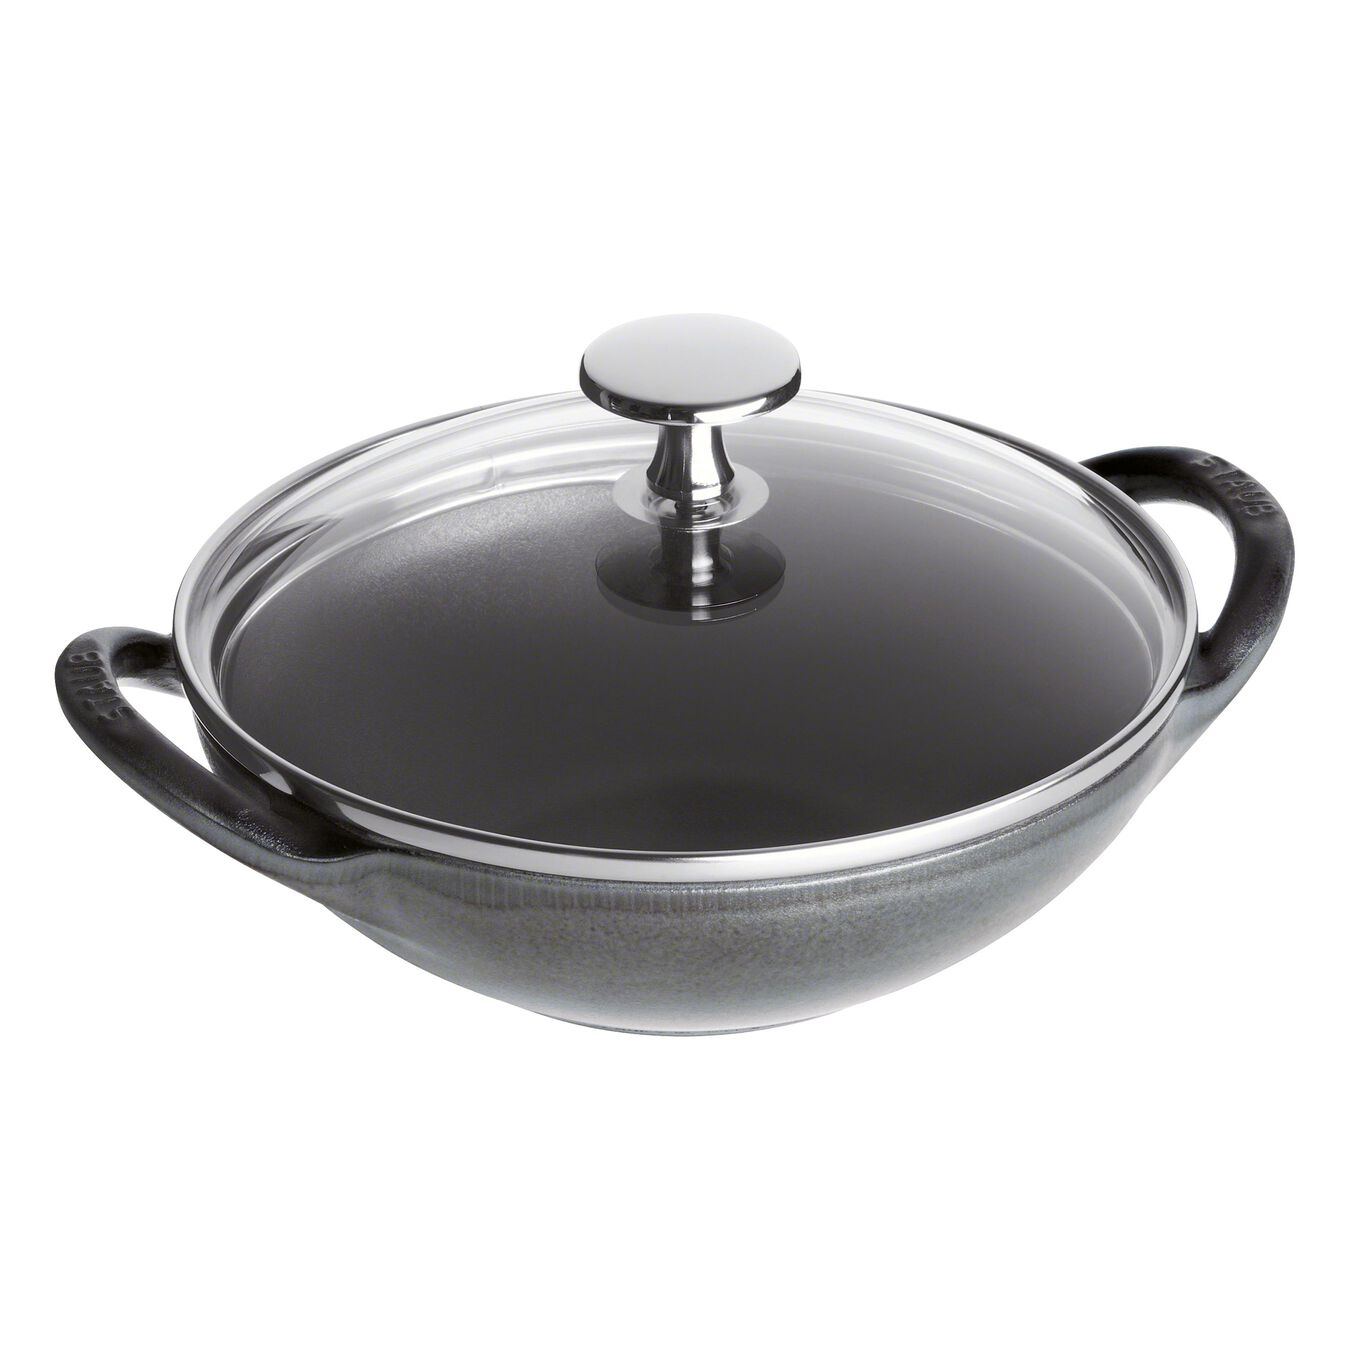 0.5-qt Baby Wok - Graphite Grey,,large 1